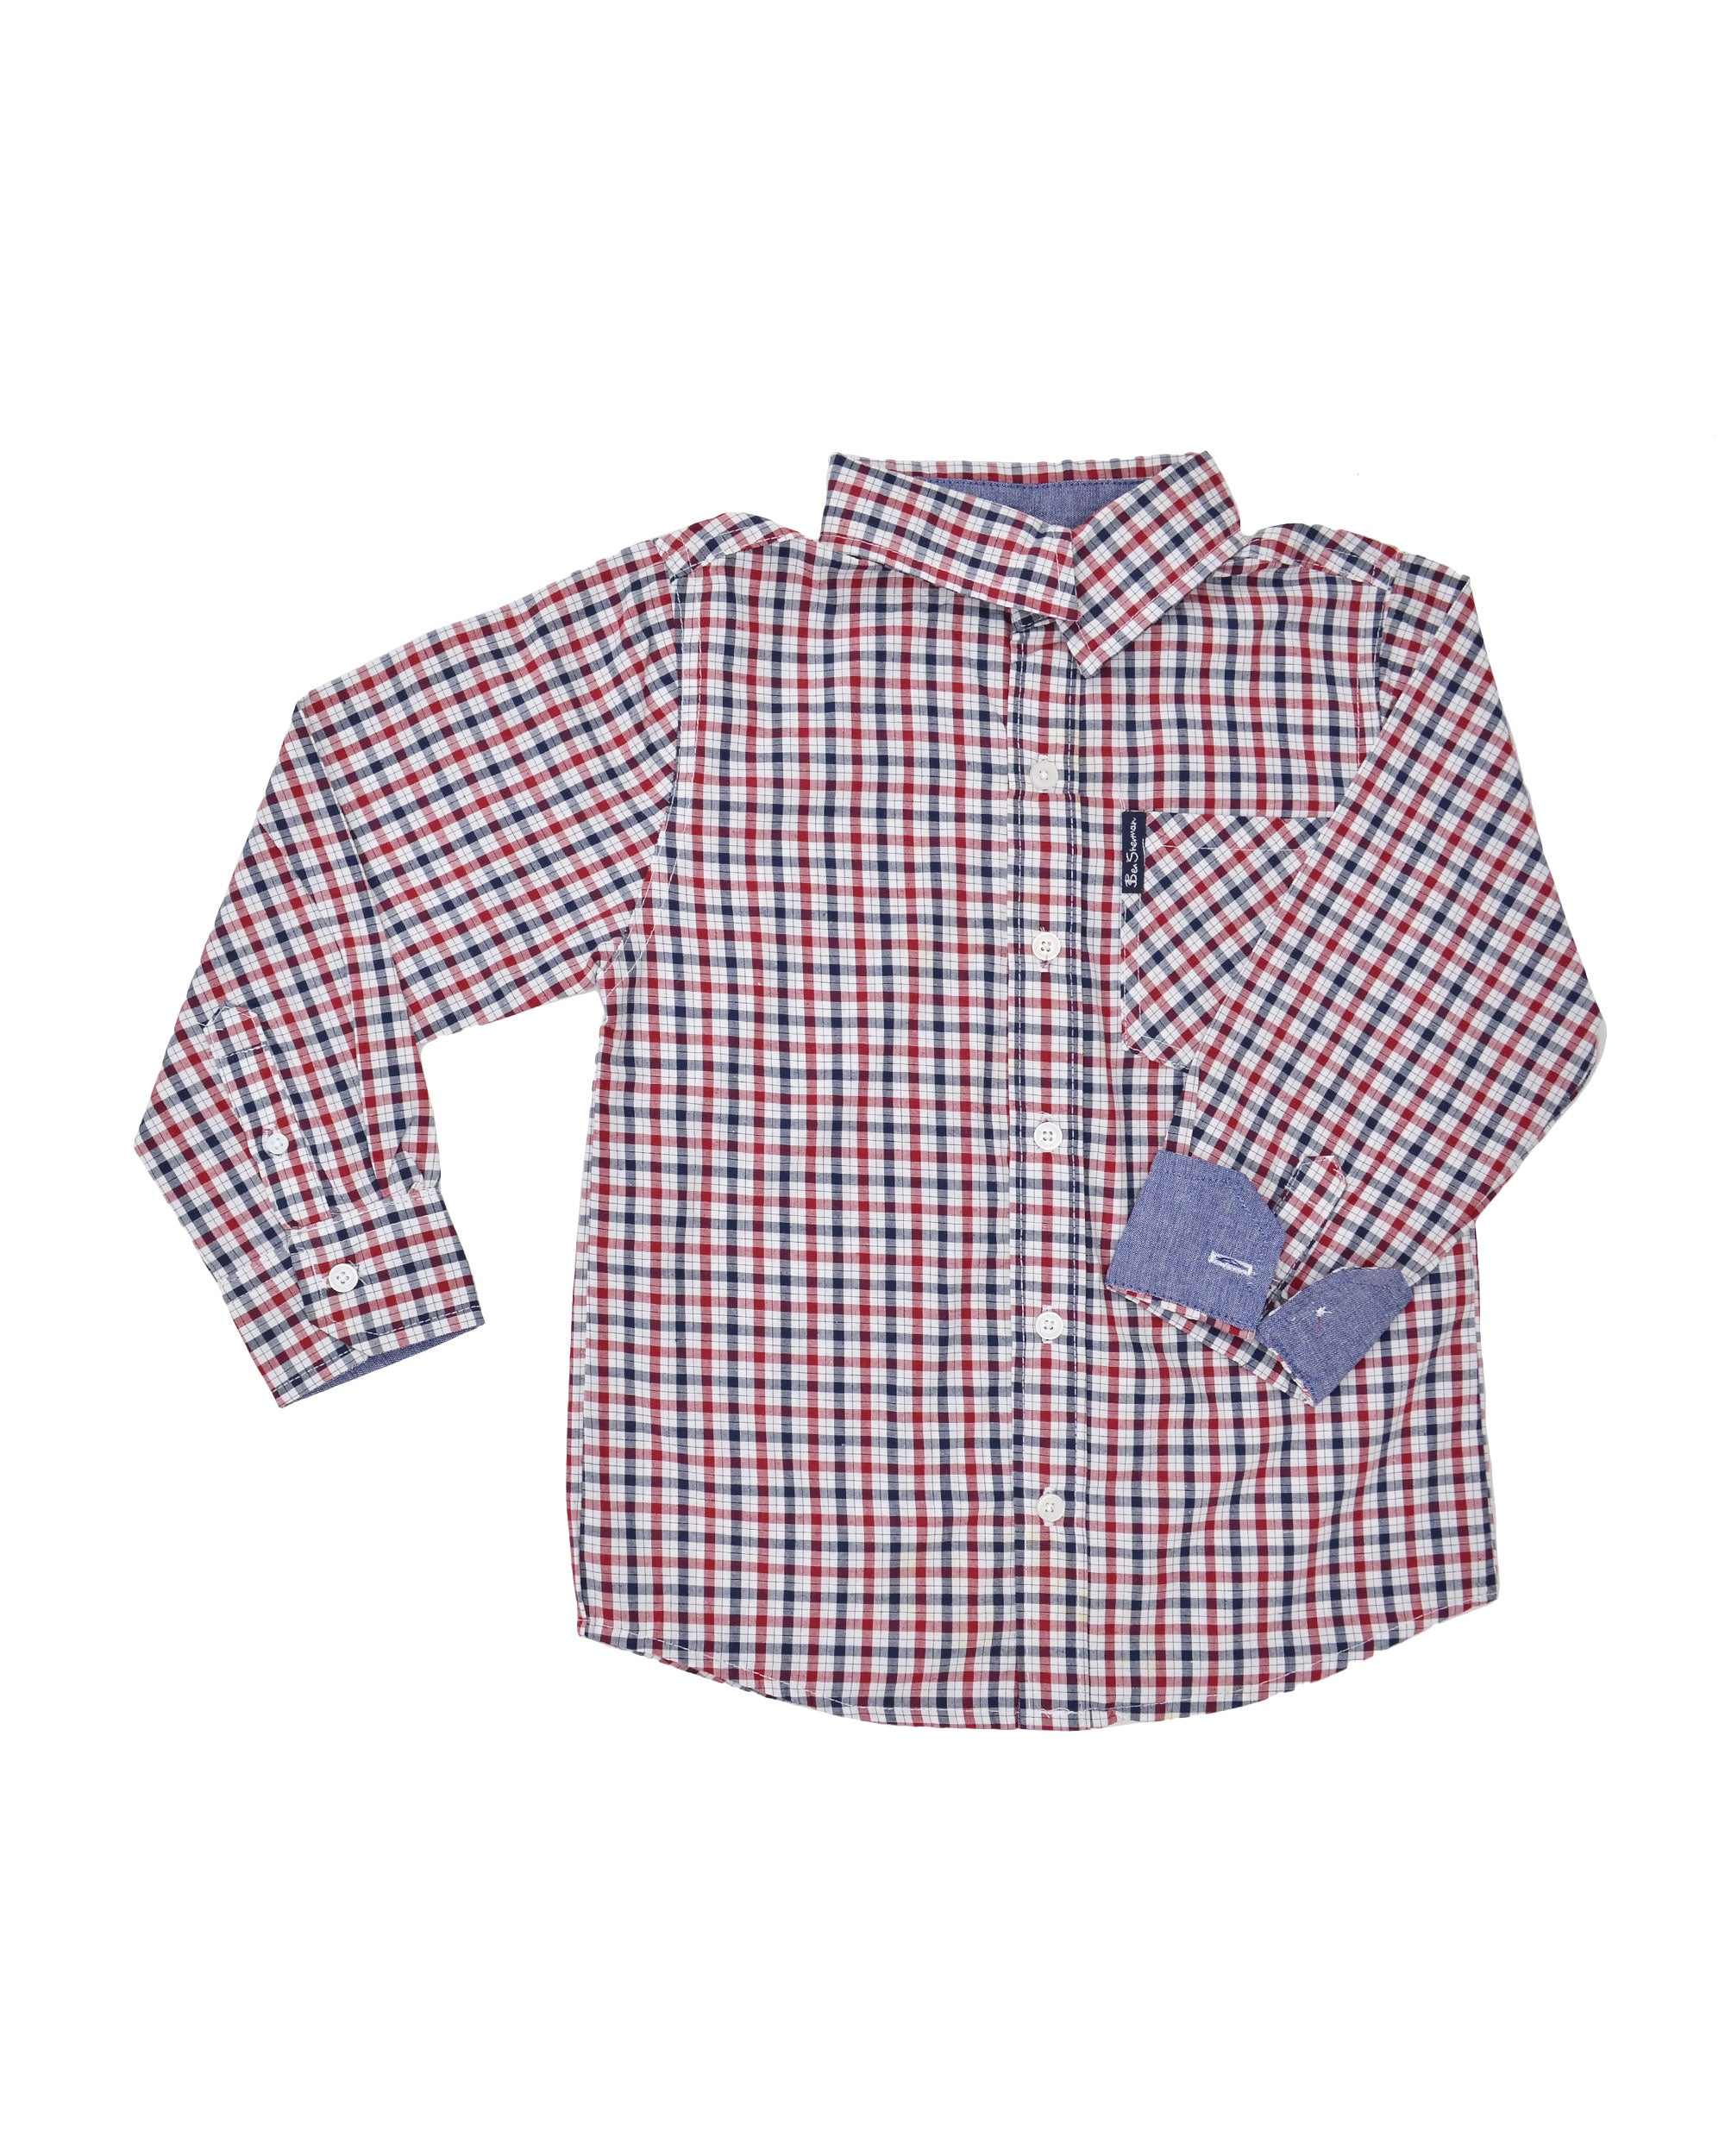 e85491467 Boys' Red & Blue Gingham Plaid Yarn Dyed Shirt (Sizes 8-18). Hover or Click  to Enlarge